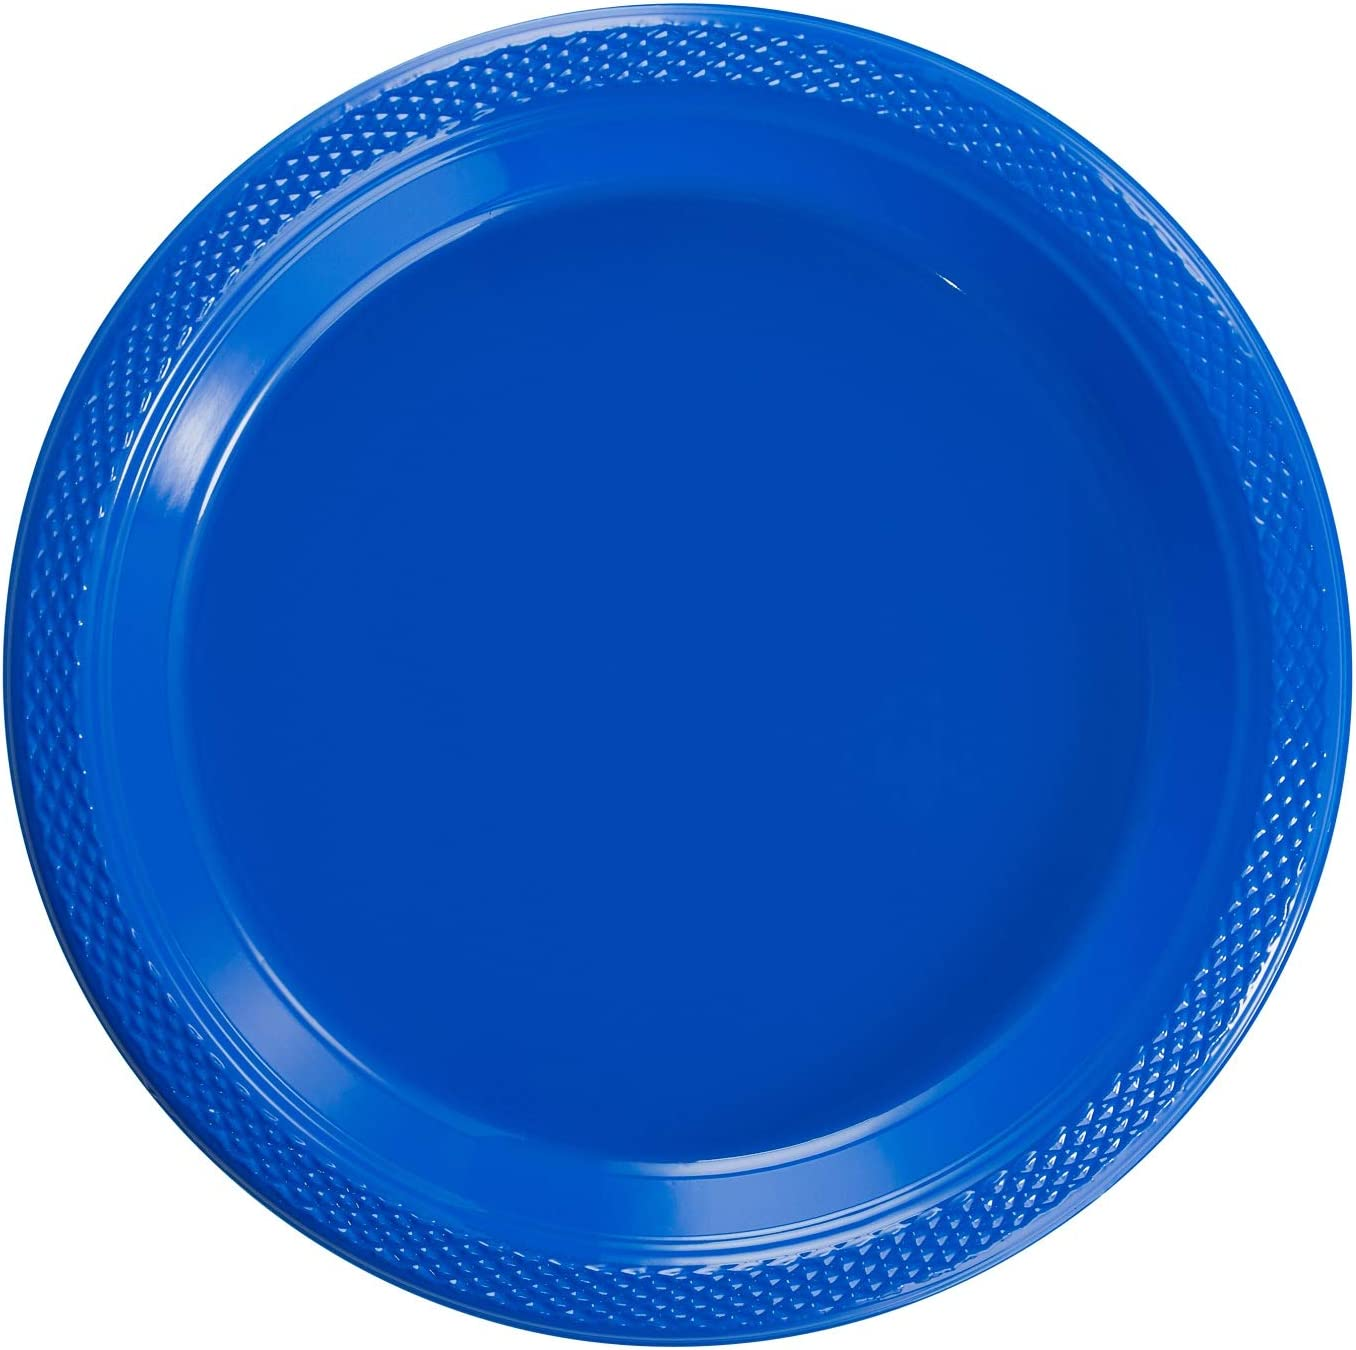 Exquisite 7 Inch. Dark Blue Plastic Dessert/Salad Plates - Solid Color Disposable Plates - 50 Count